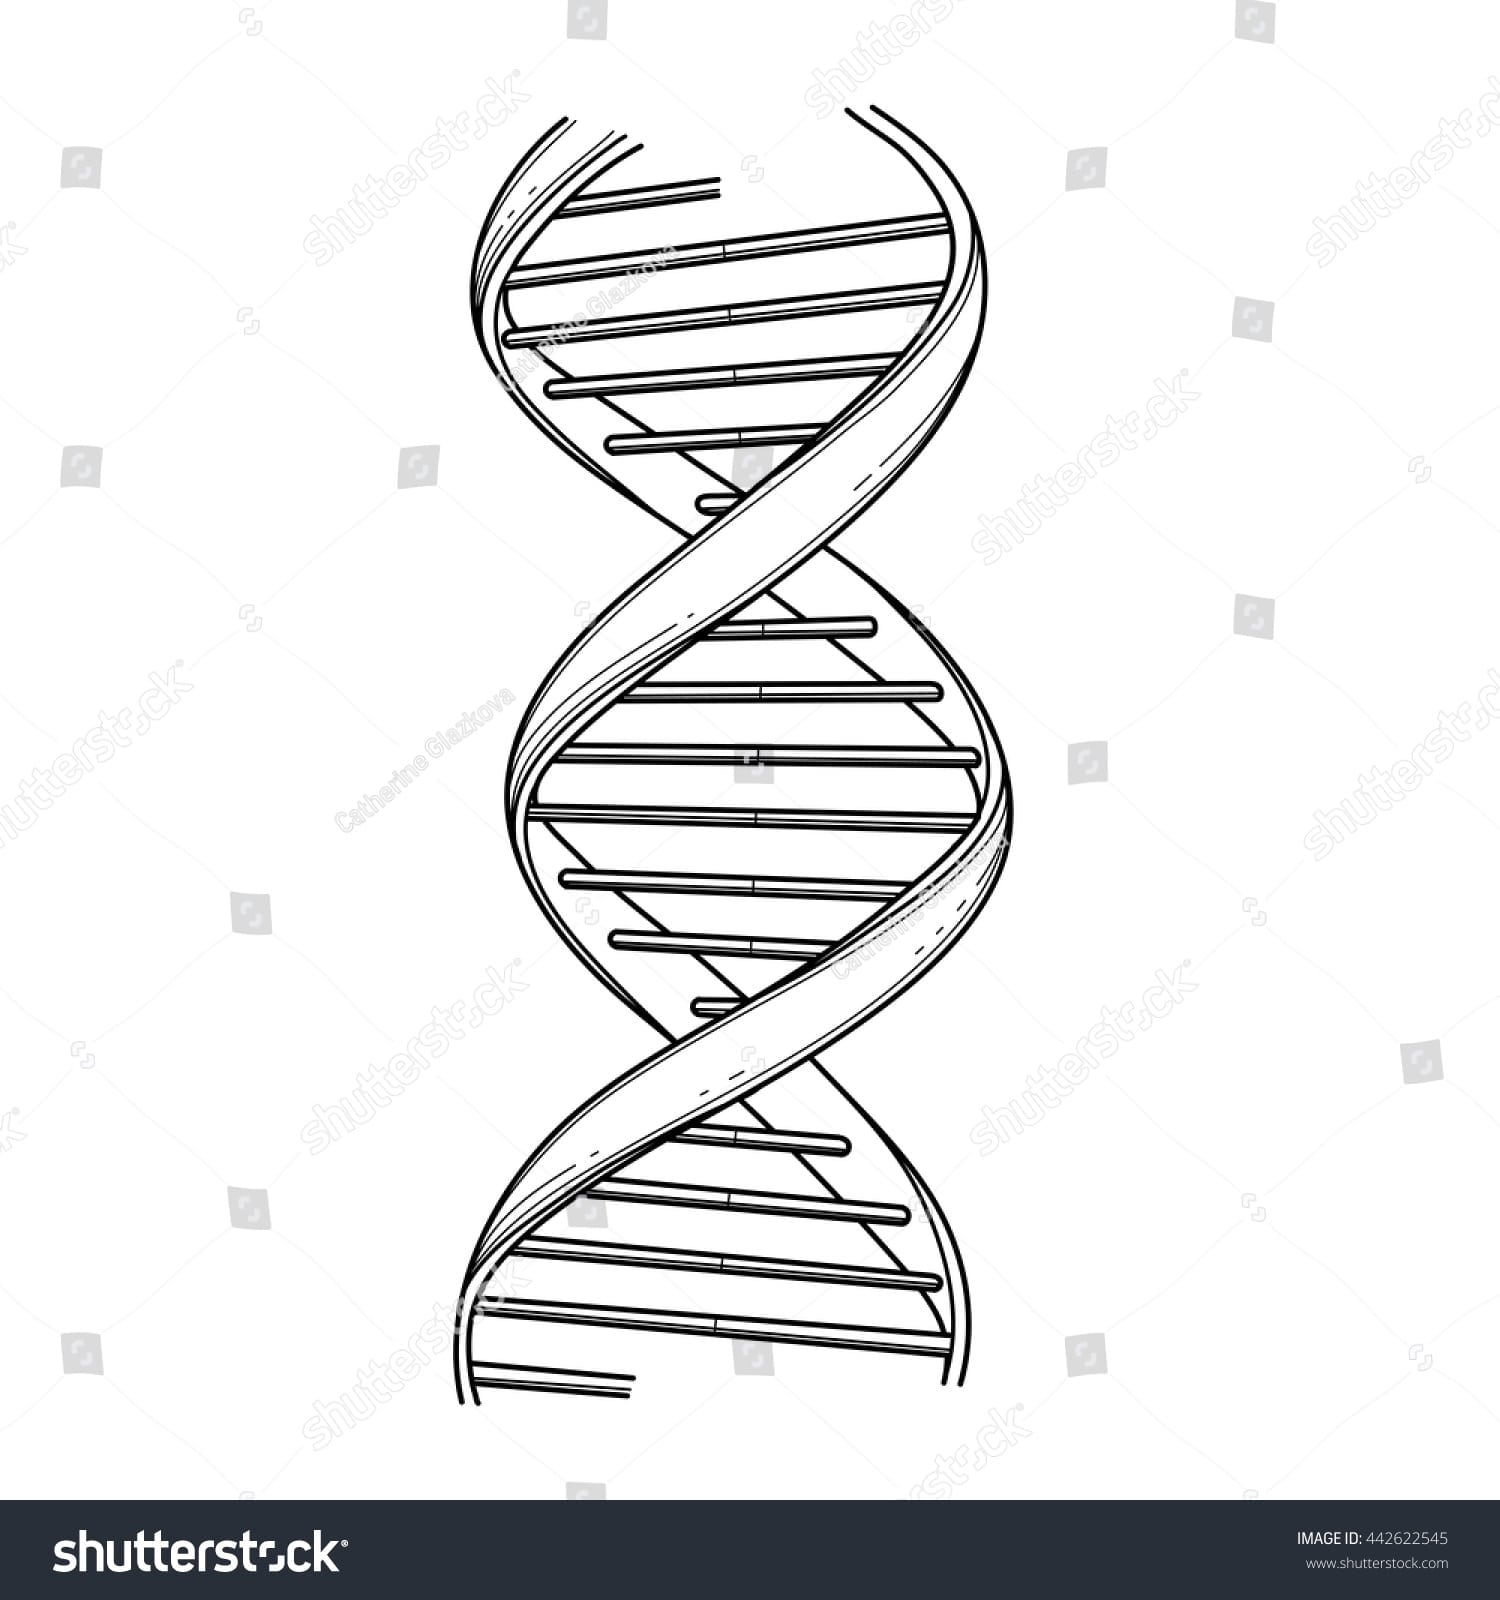 Common Worksheets Dna Replication Coloring Worksheet And Page At